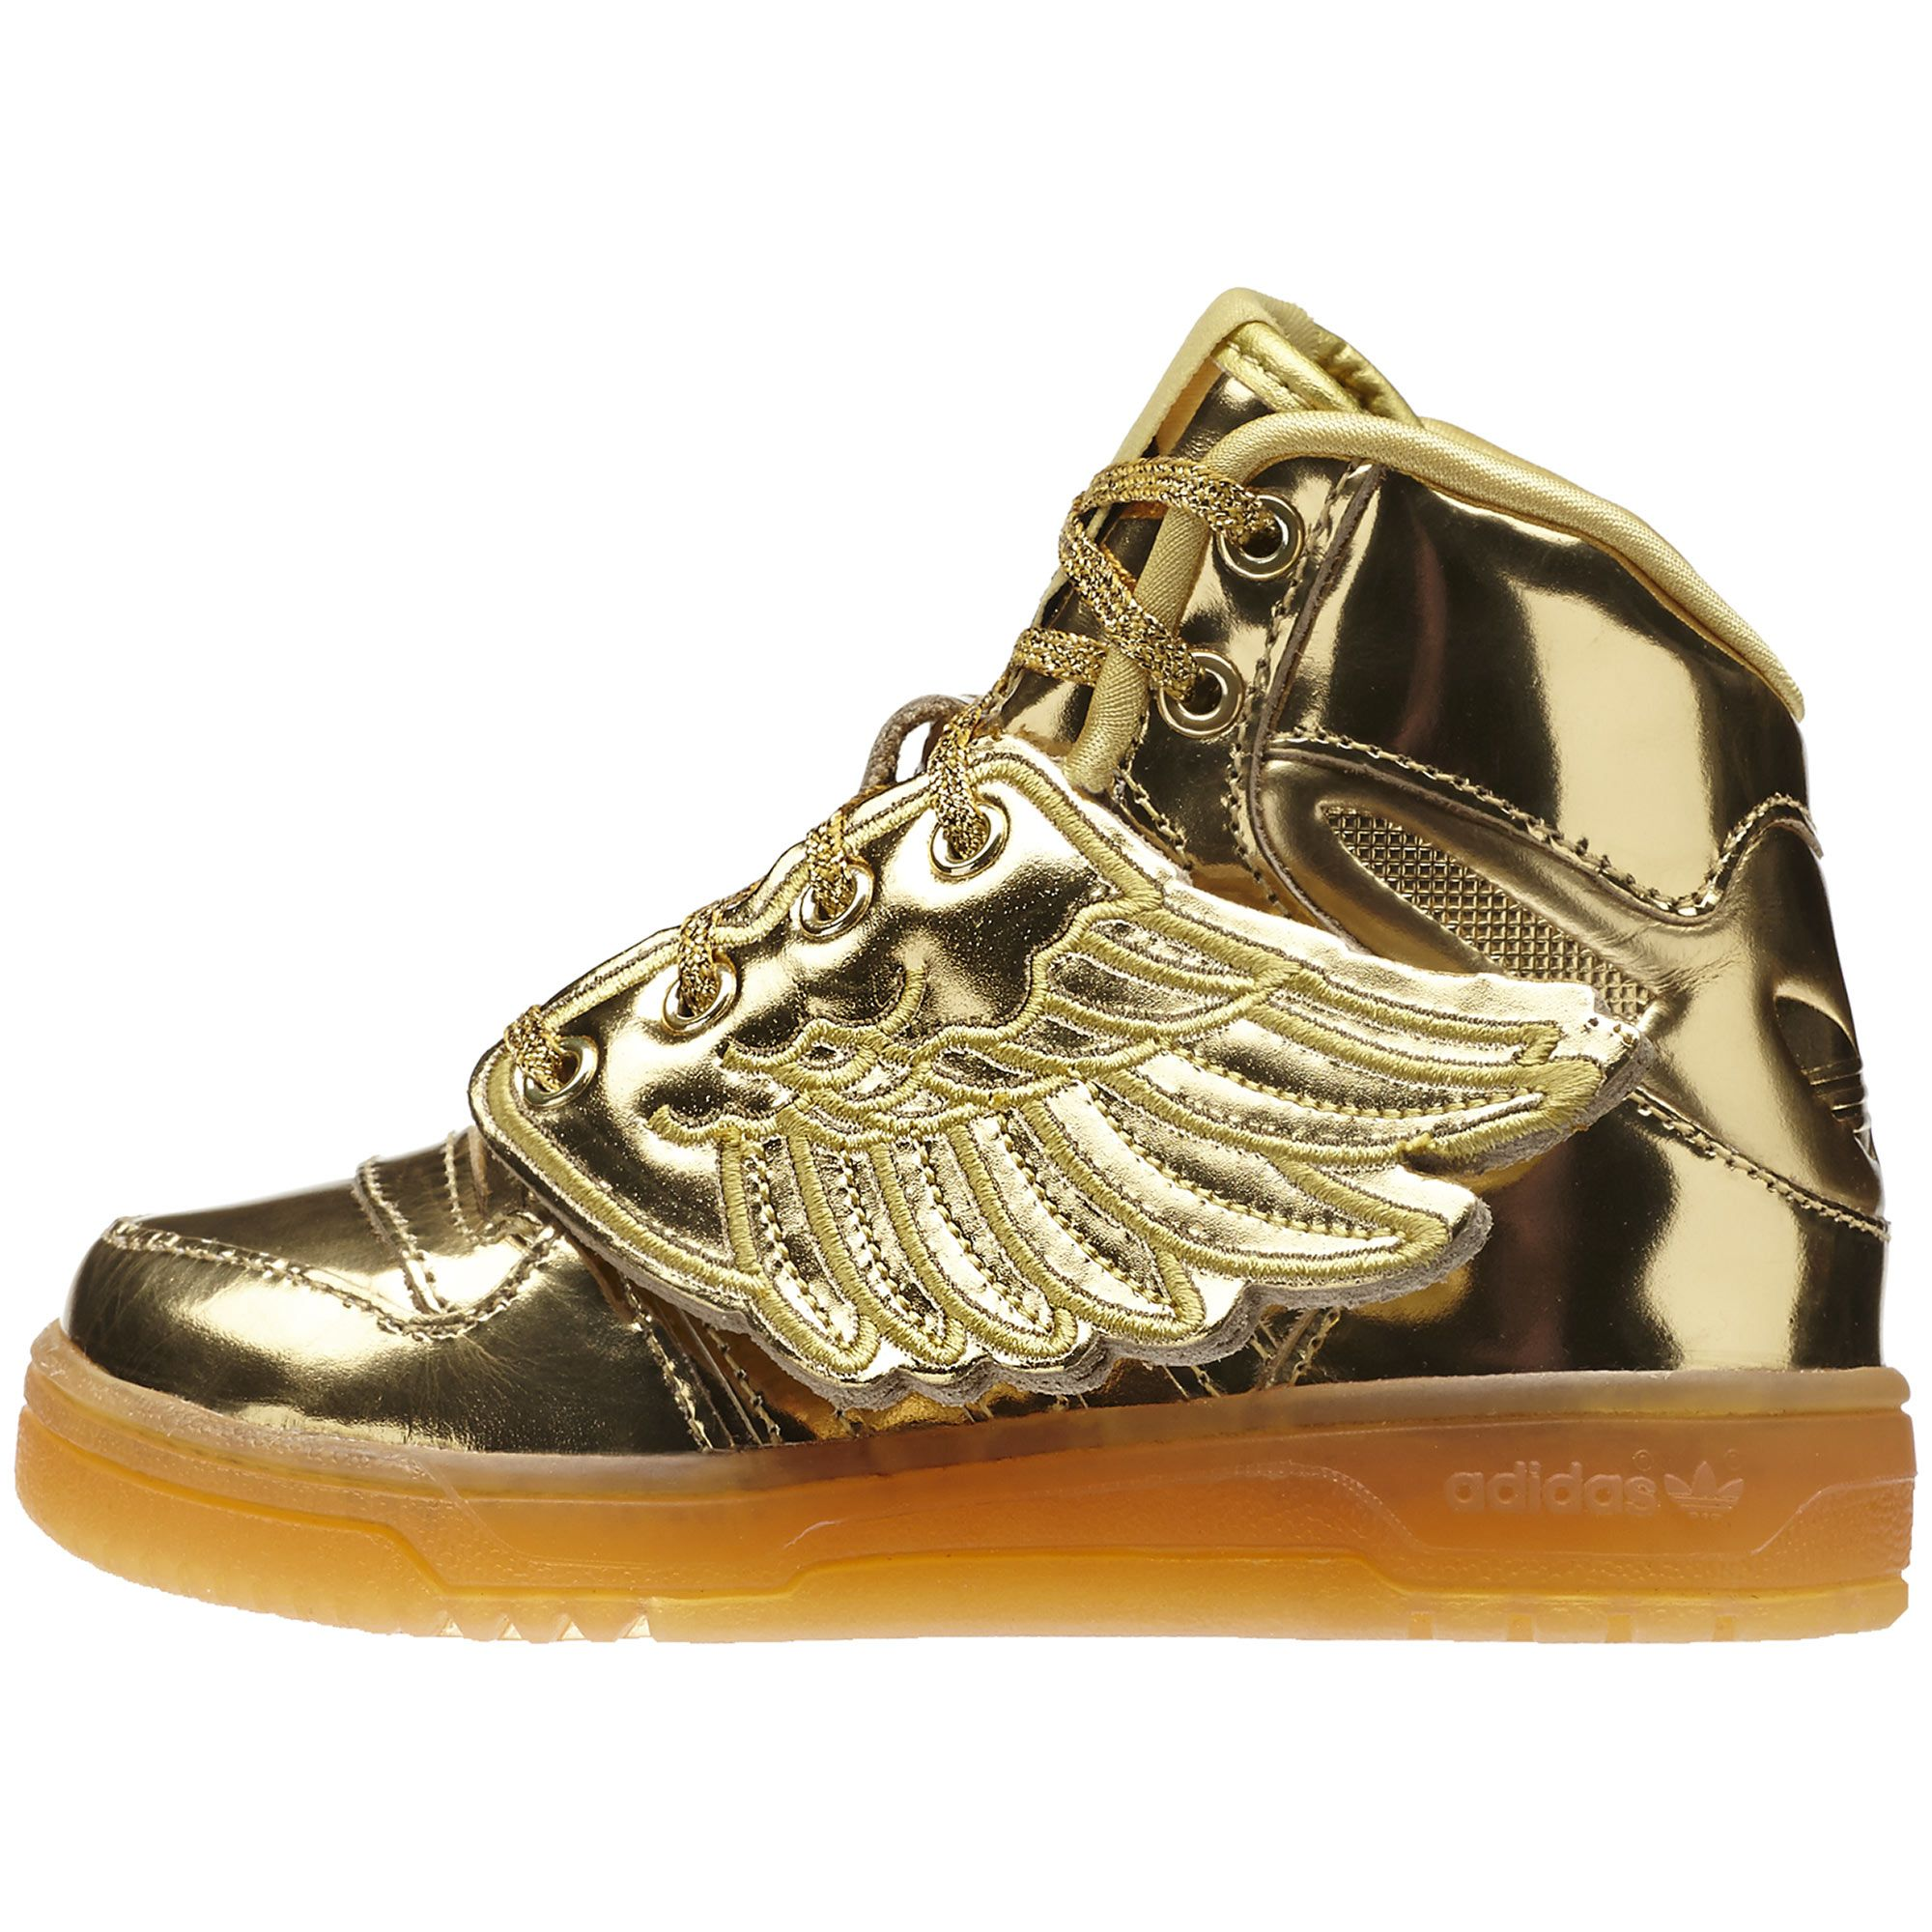 size 40 36478 6790e adidas Wings Gold Mirror Schuh   adidas Deutschland SHOES THE KID I DON T  HAVE YET  3  3 More